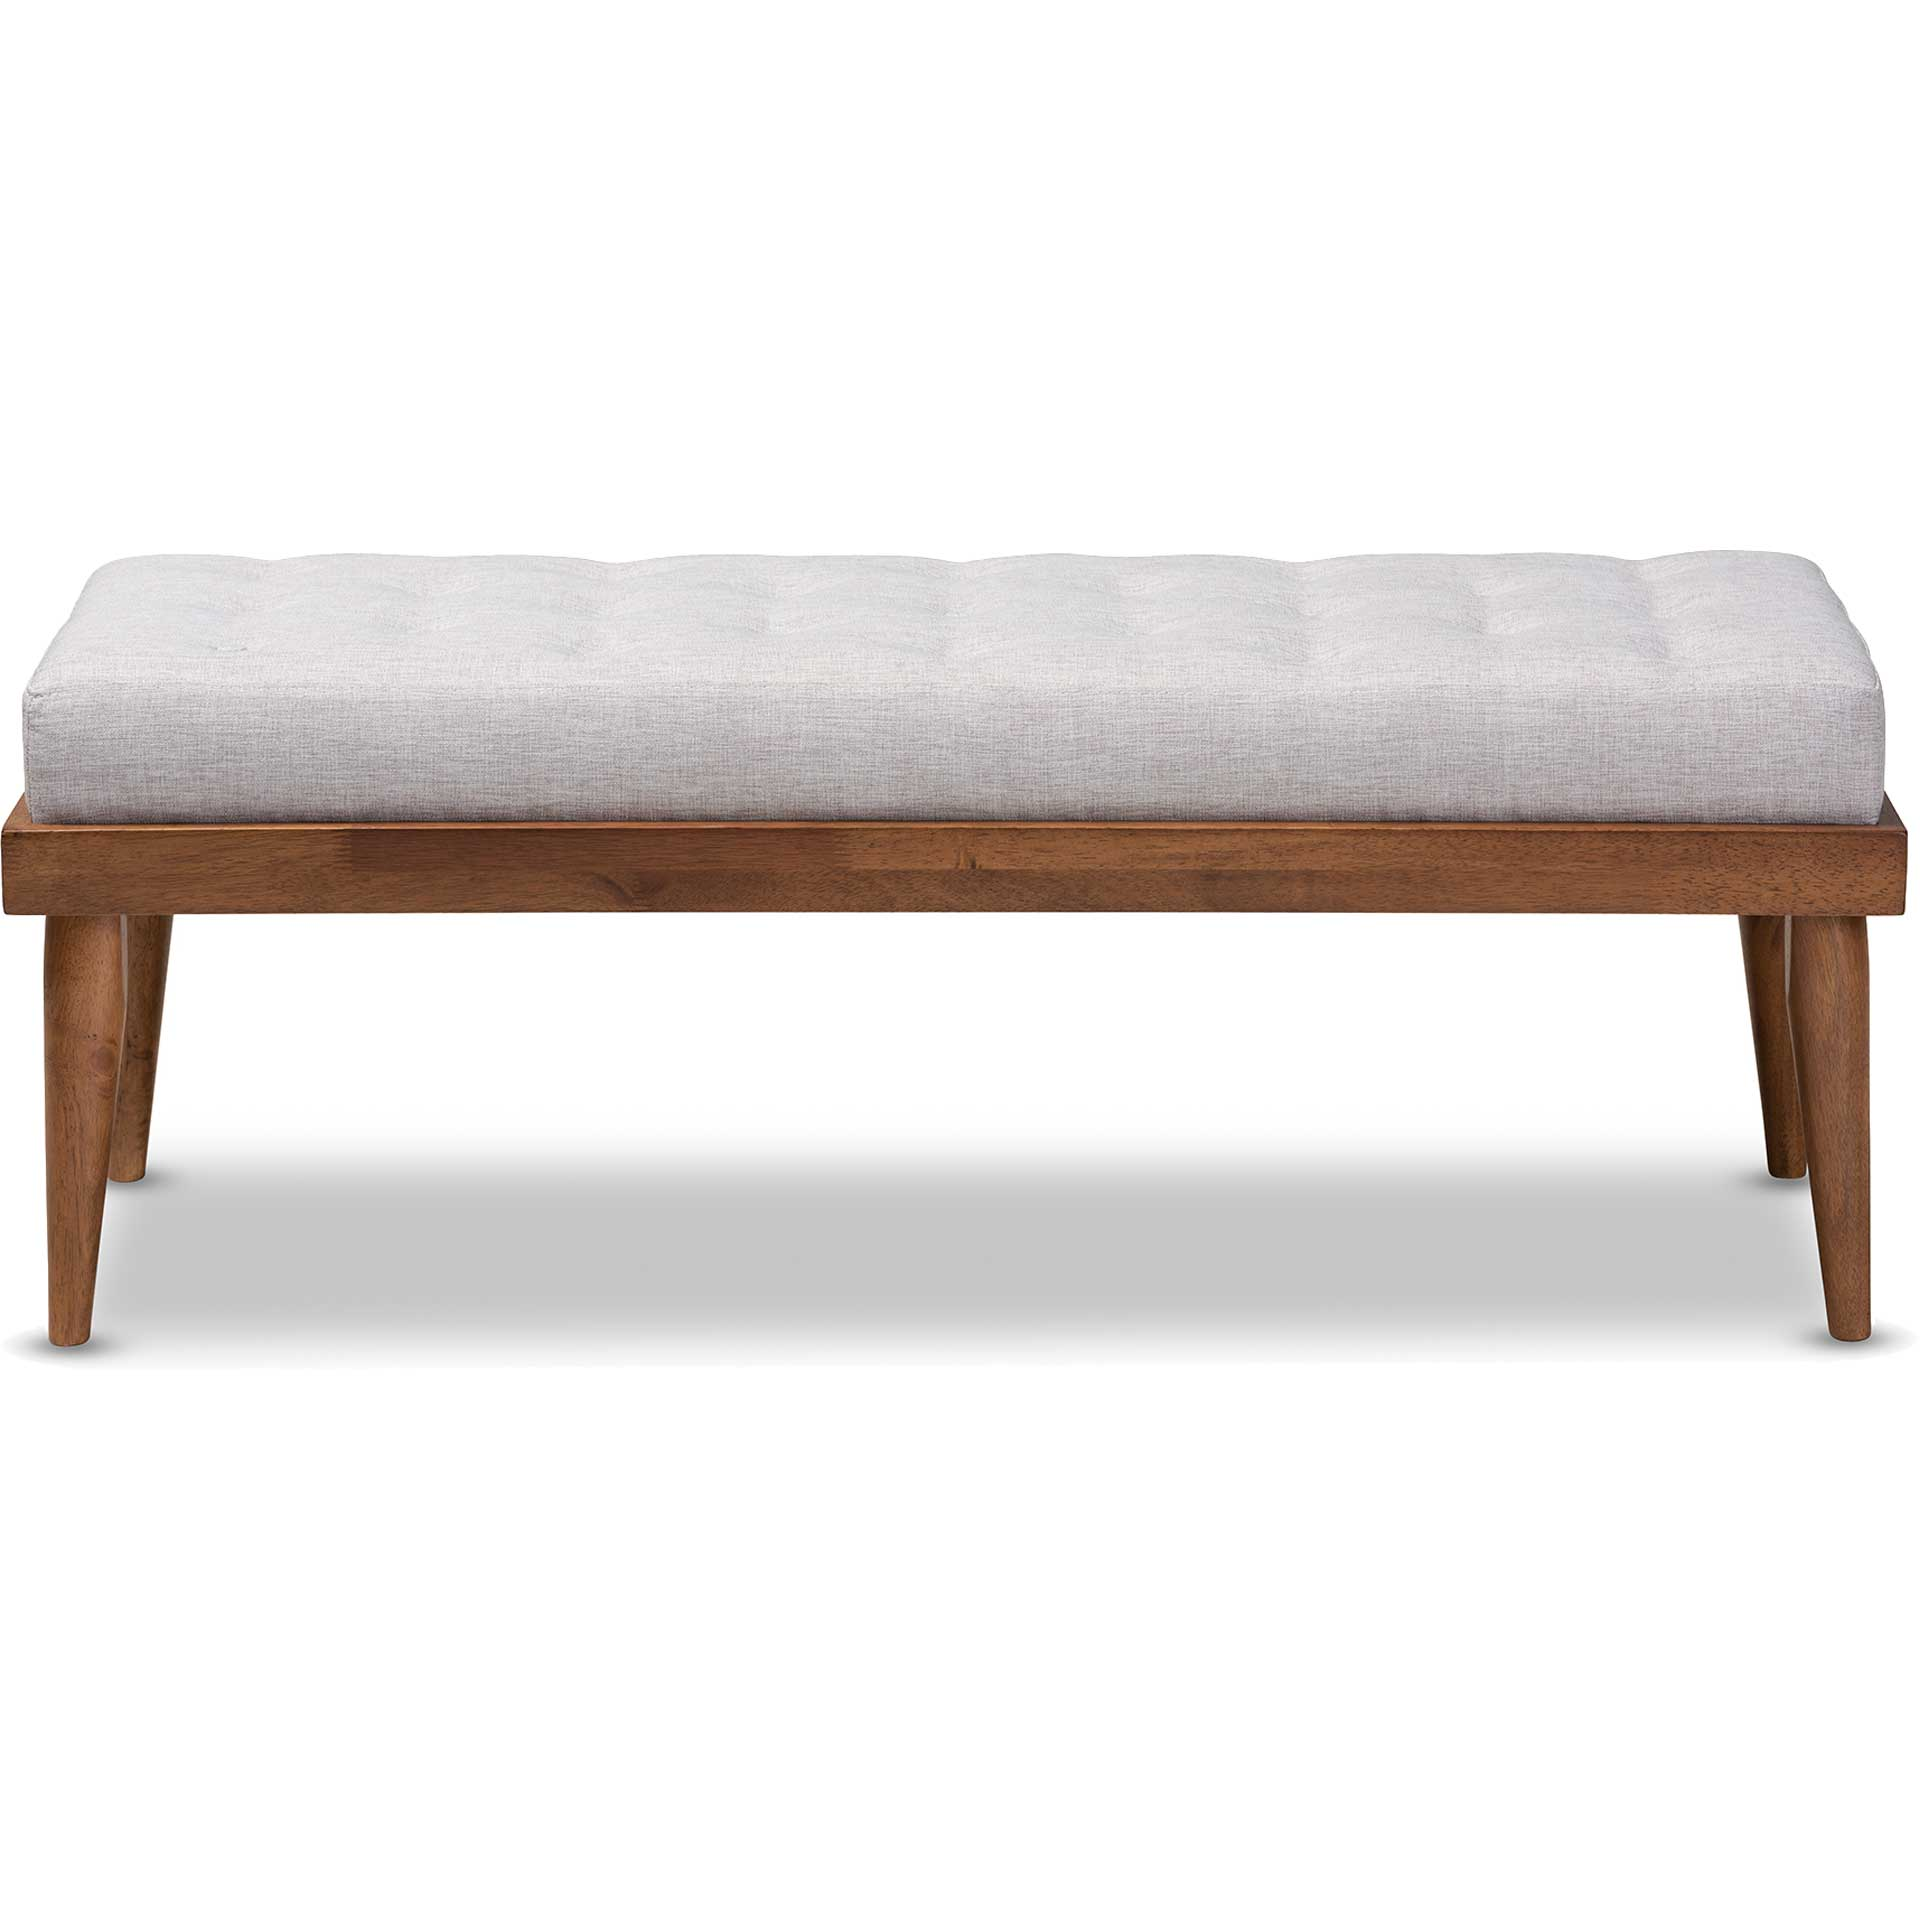 Seattle Fabric Upholstered Bench Grayish Beige/Walnut